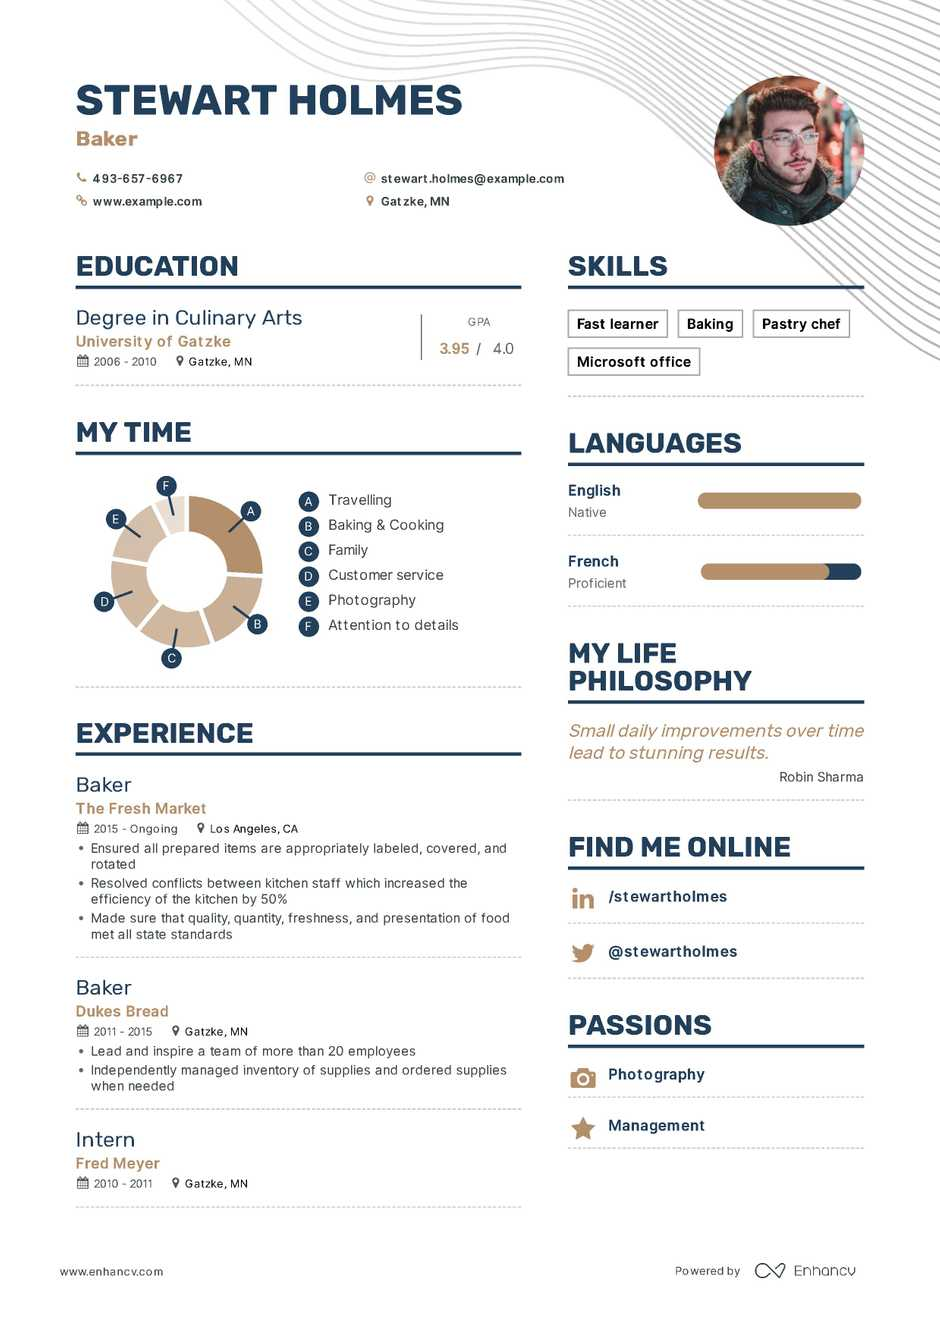 Example Of A Resume Generated Baker Resume example of a resume wikiresume.com